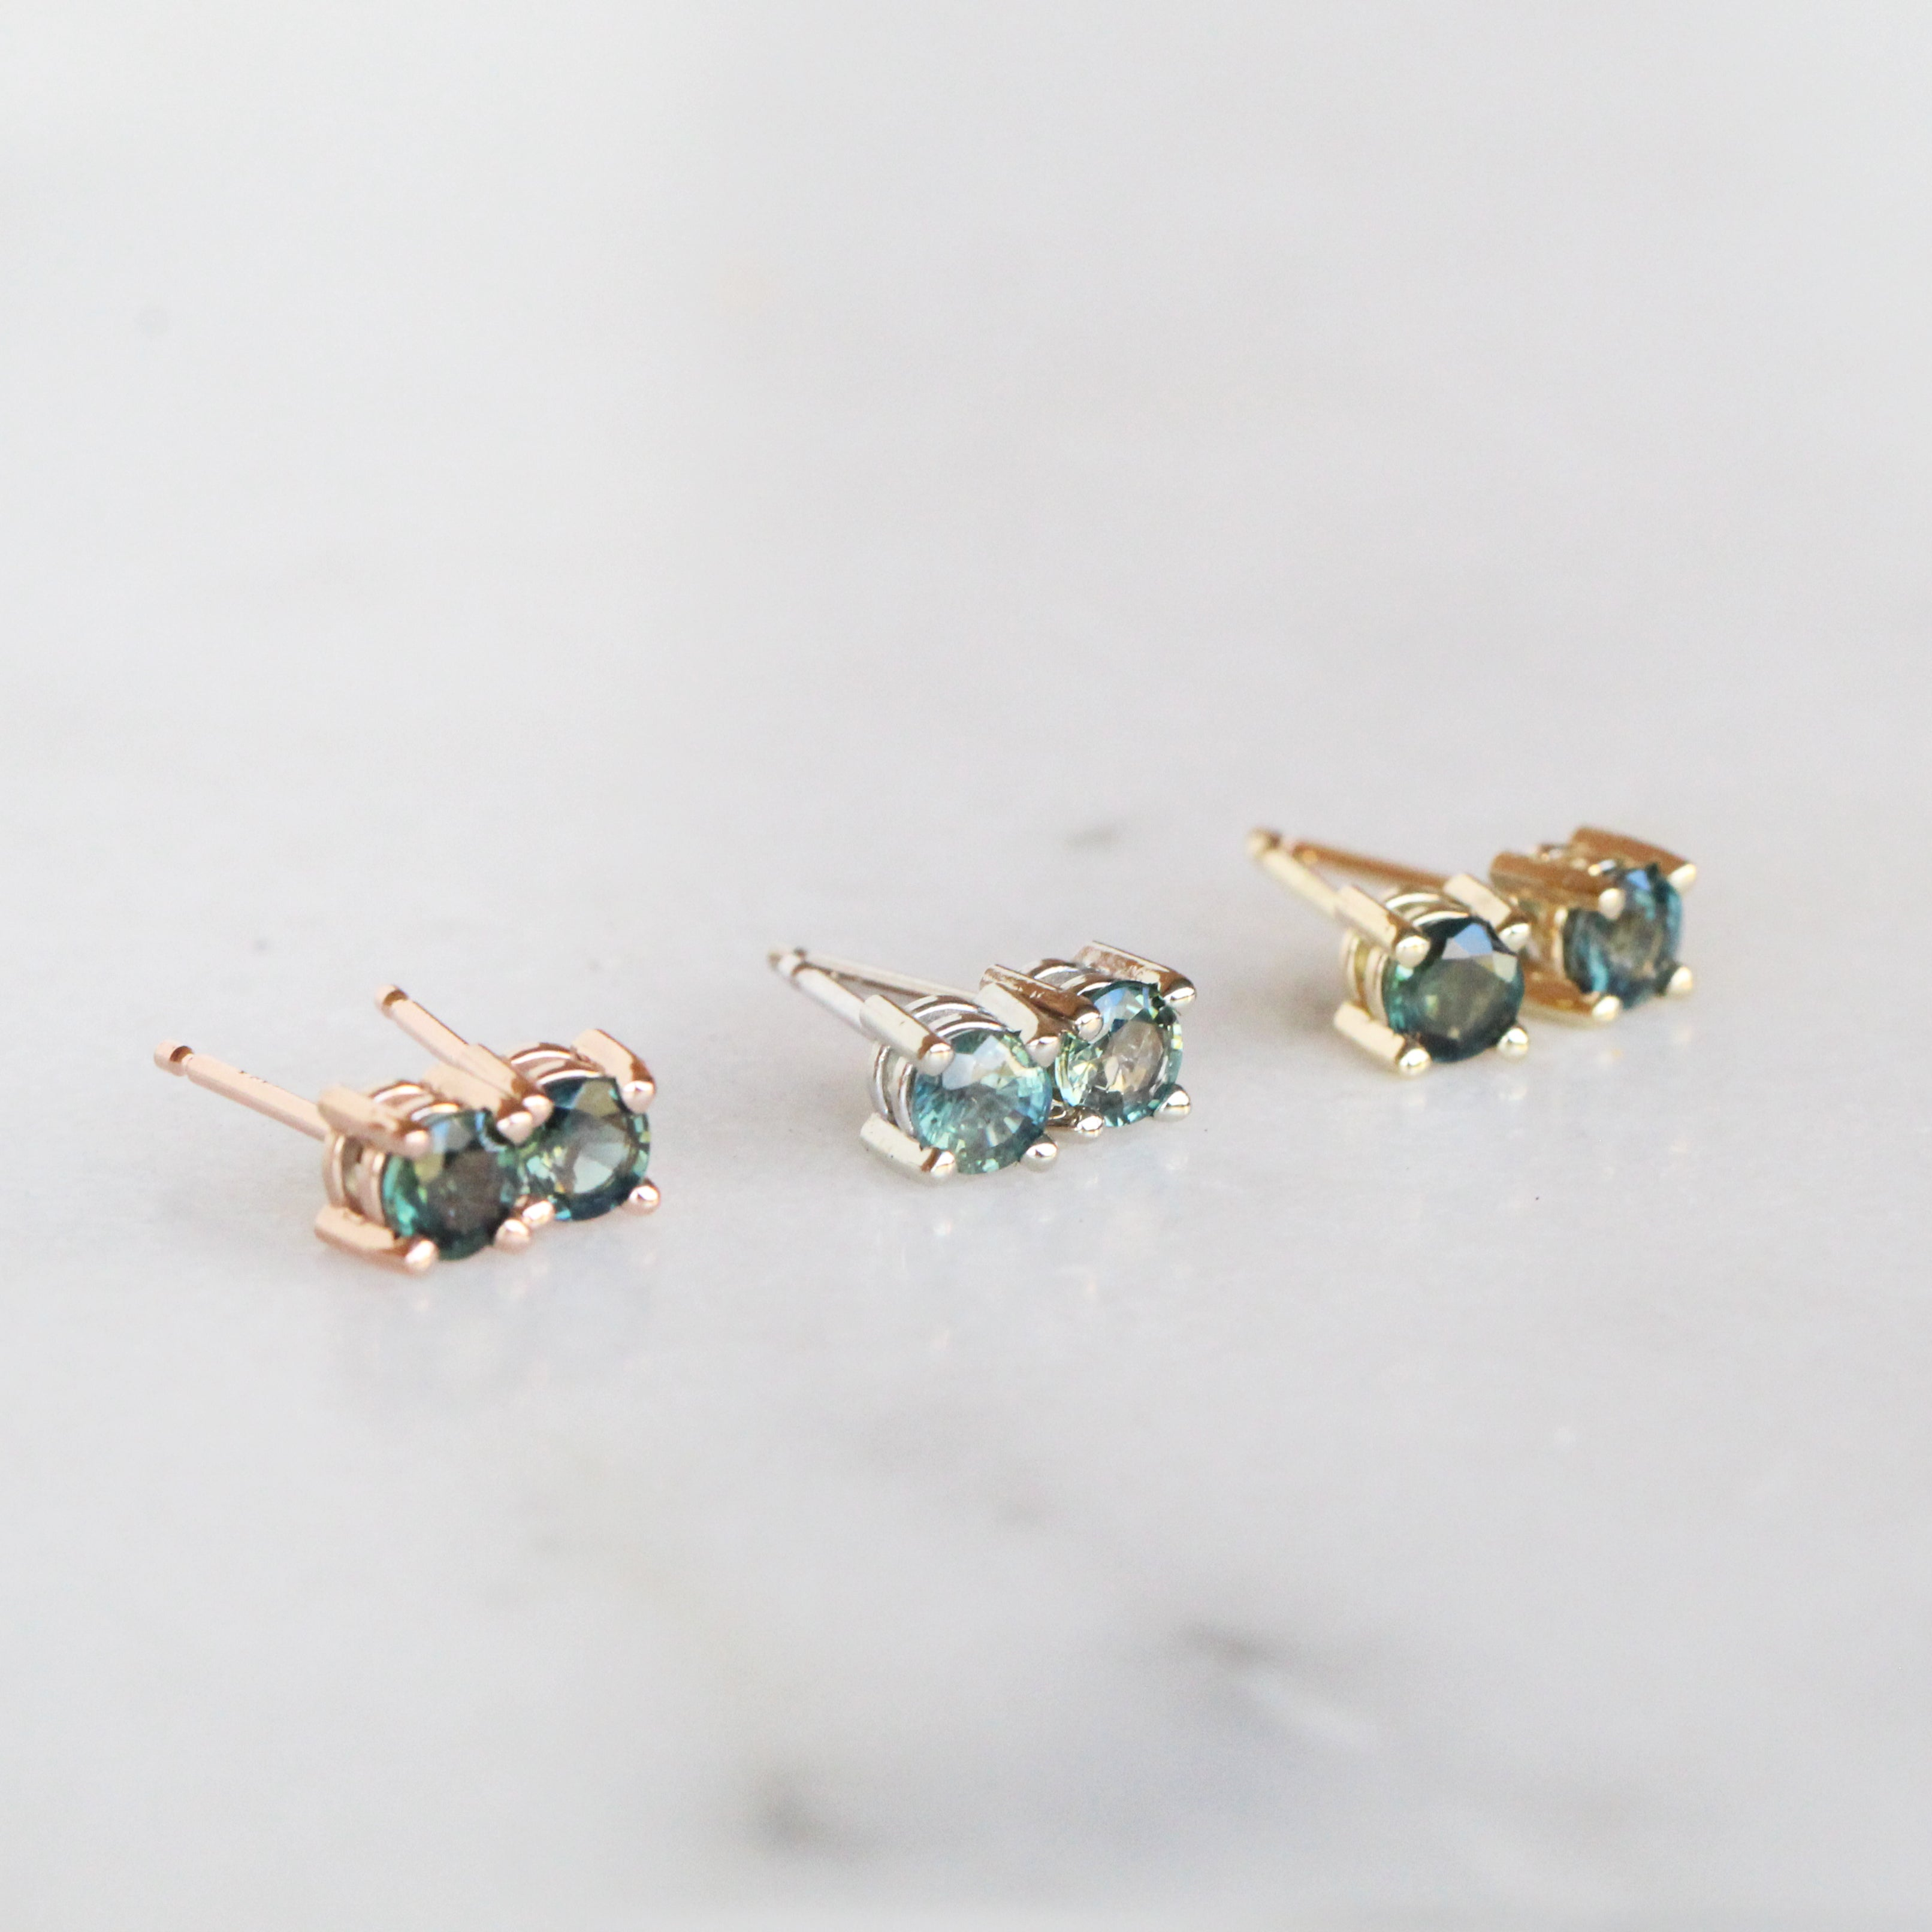 14k Gold Earring Studs with Teal Blue Green Sapphires - Your choice of metal- Ready to ship - Celestial Diamonds ® by Midwinter Co.